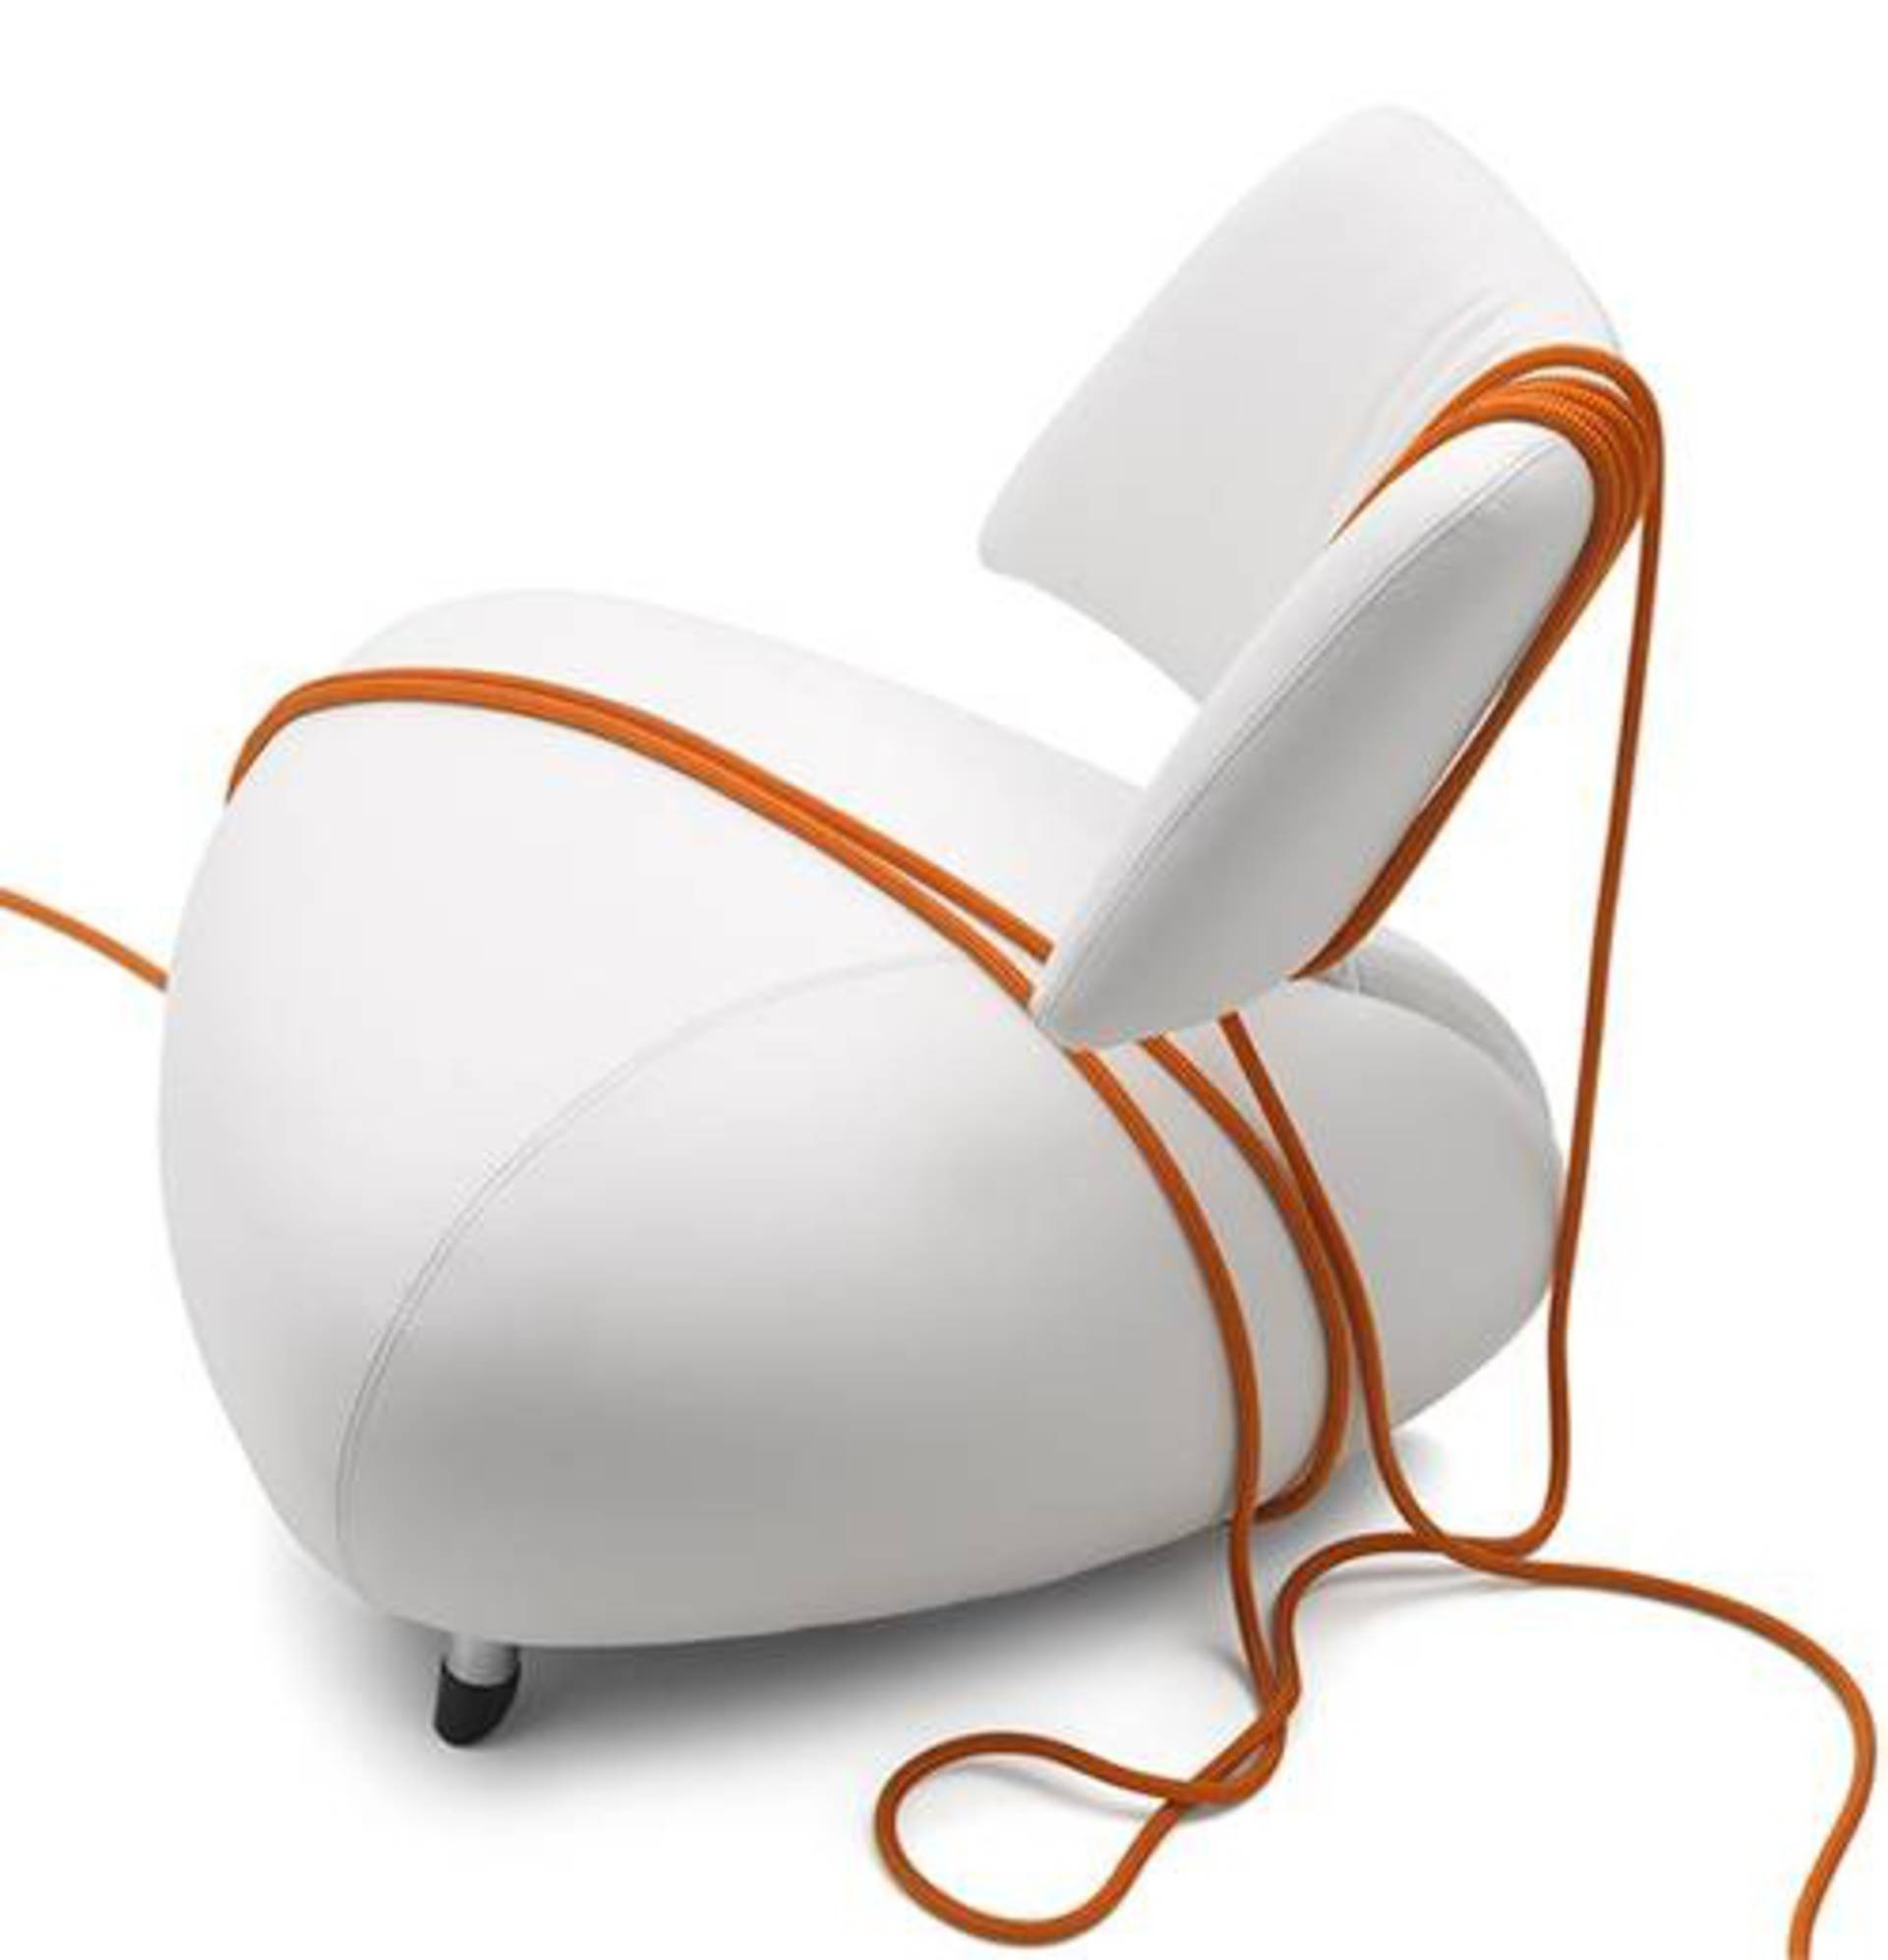 Futuristic Pallone Armchair By Leolux Home Reviews